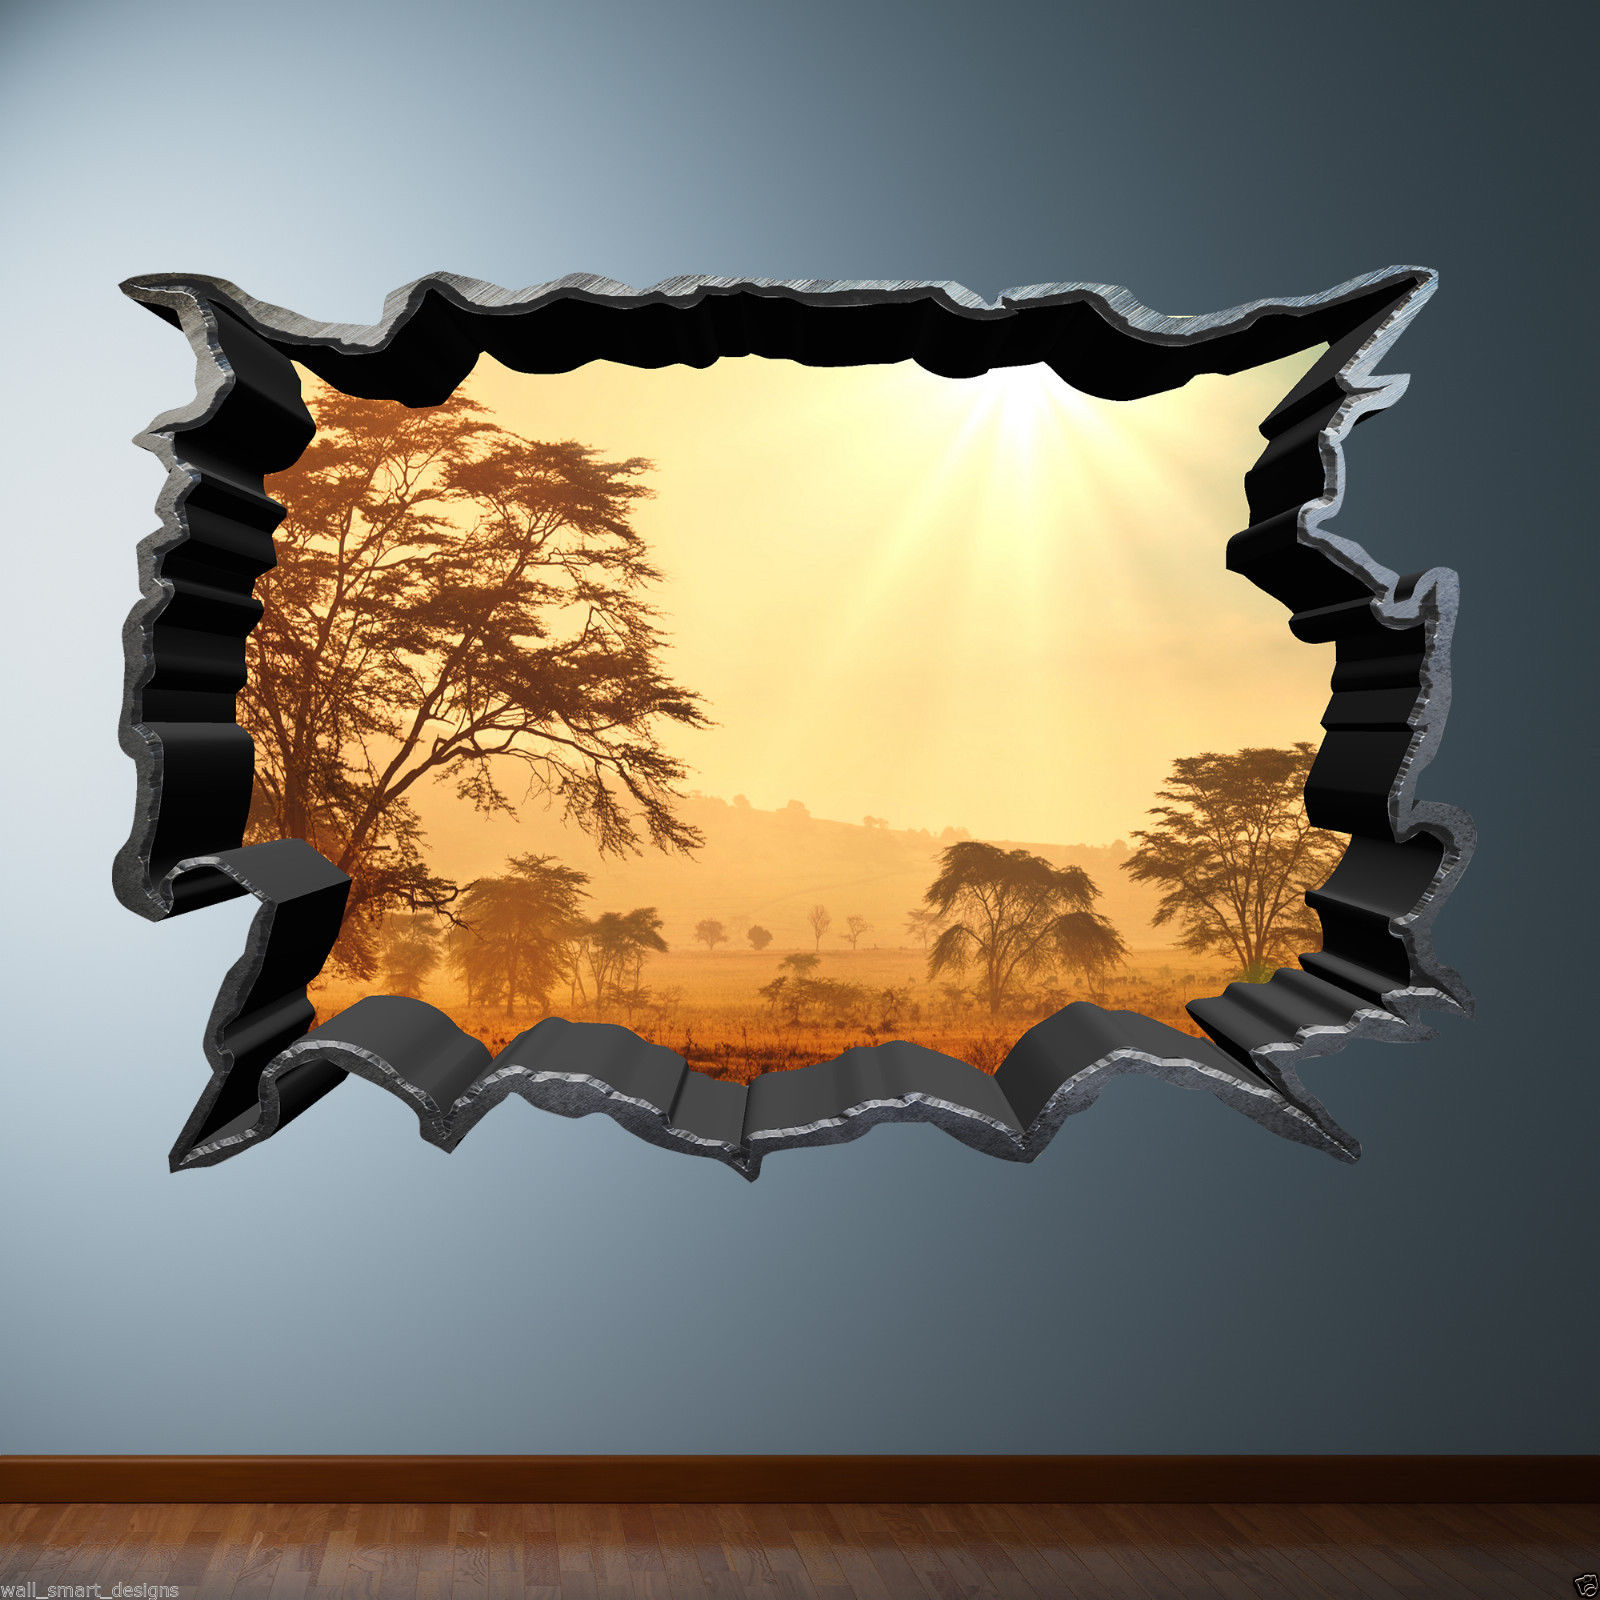 Cracked Hole Safari Home 3D Full Colour Wall Sticker Decal Sunset ...